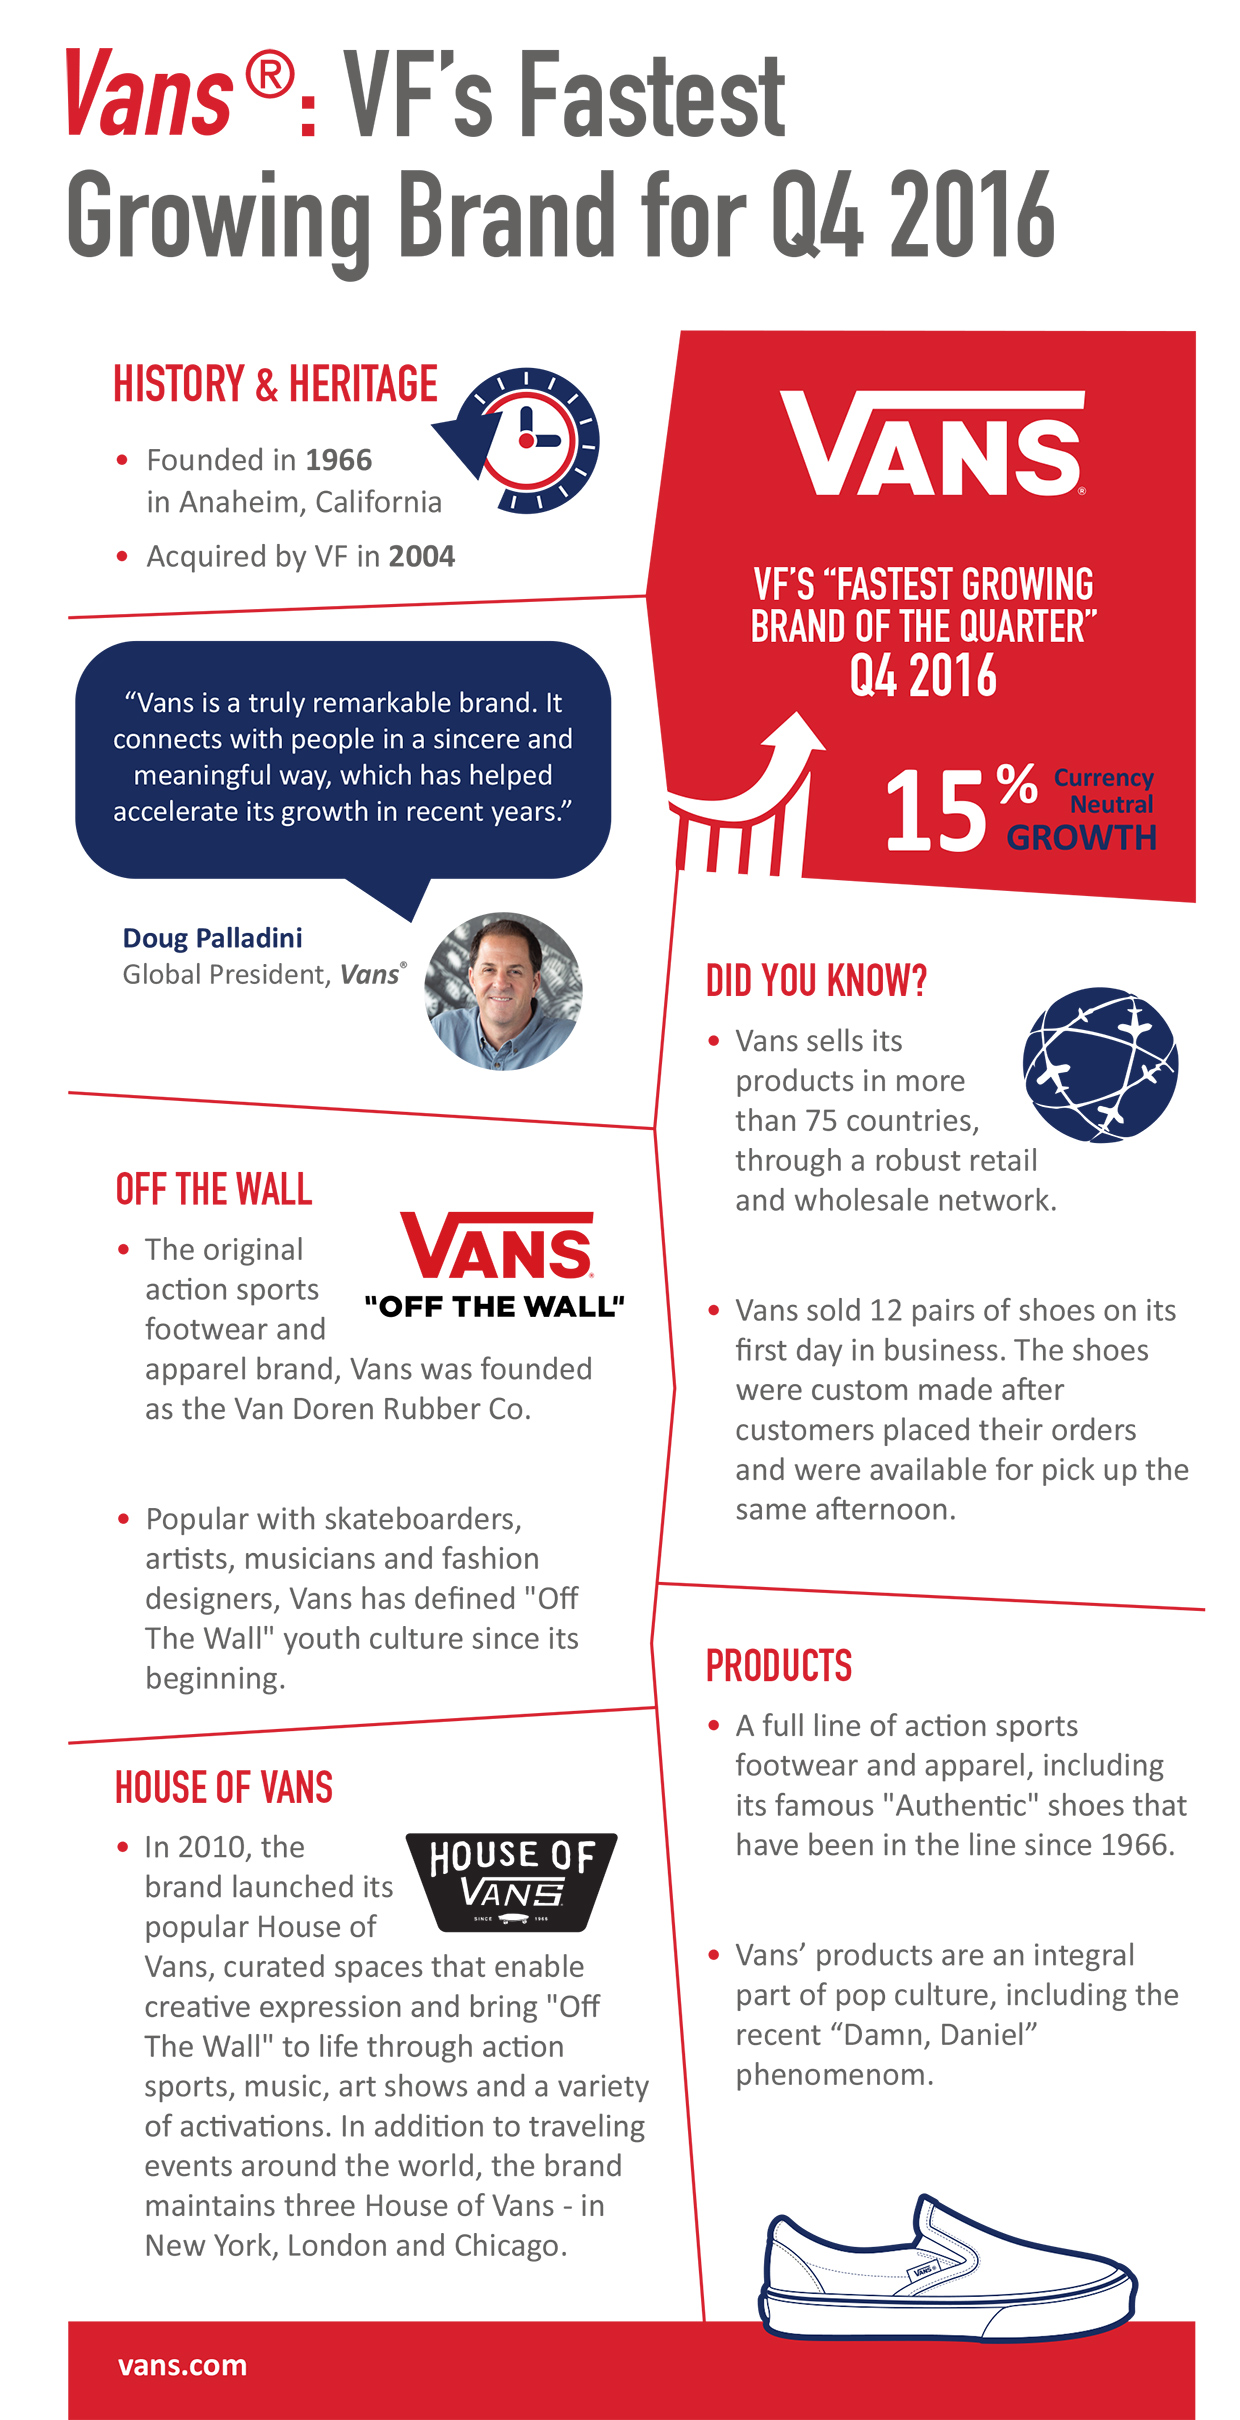 Vans - VF's Fastest Growing Brand